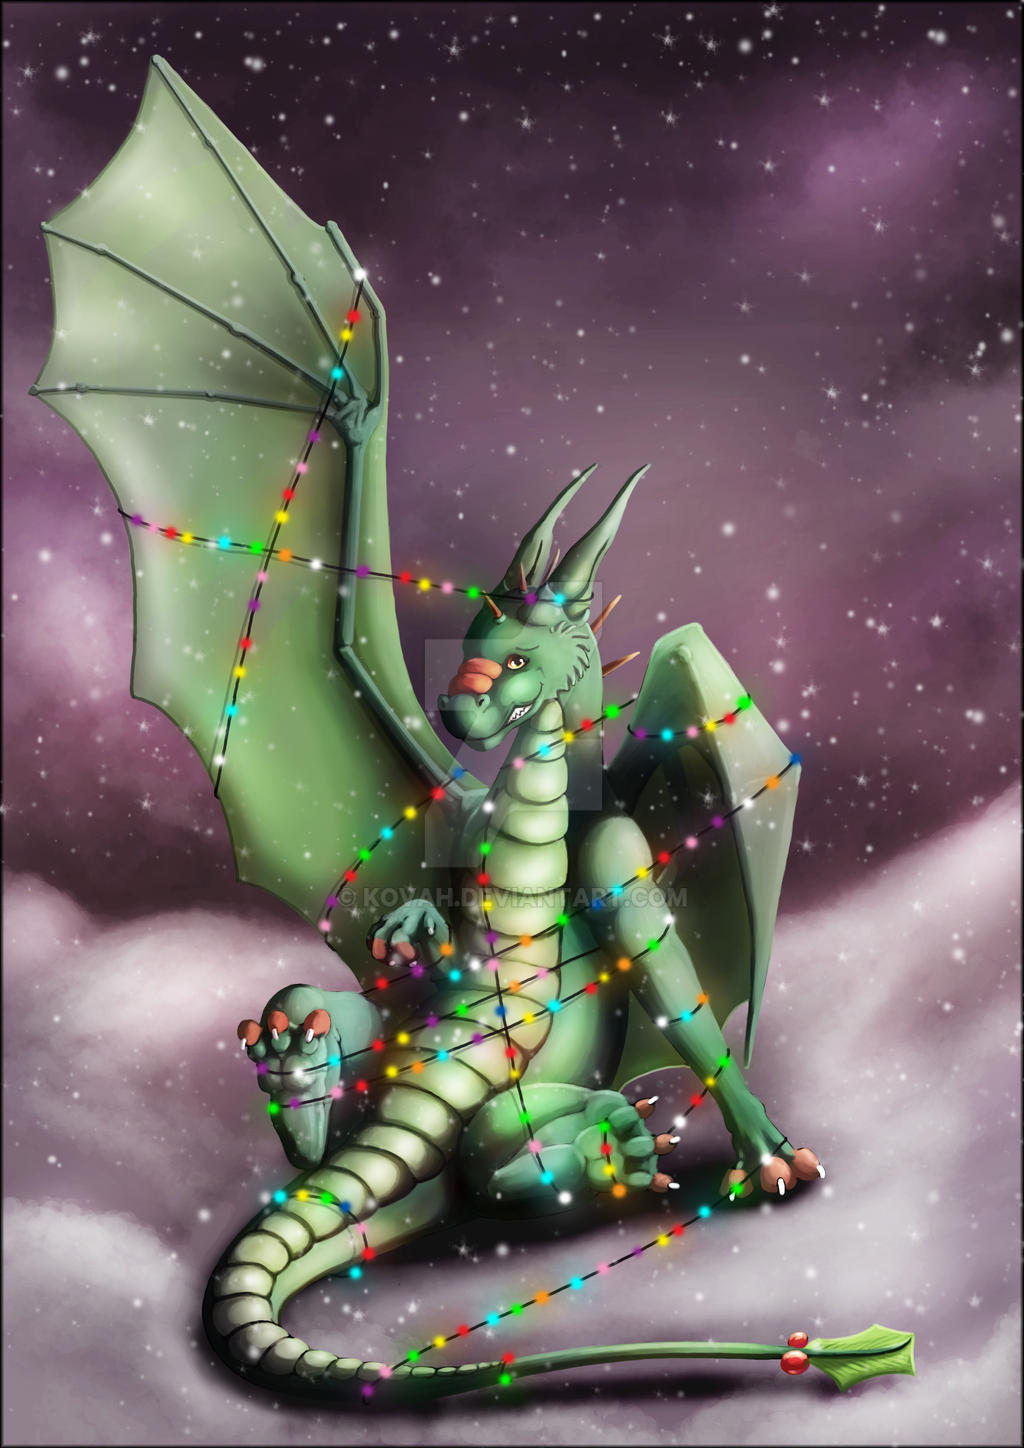 Christmas Dragon Lairy Fights by kovah on DeviantArt